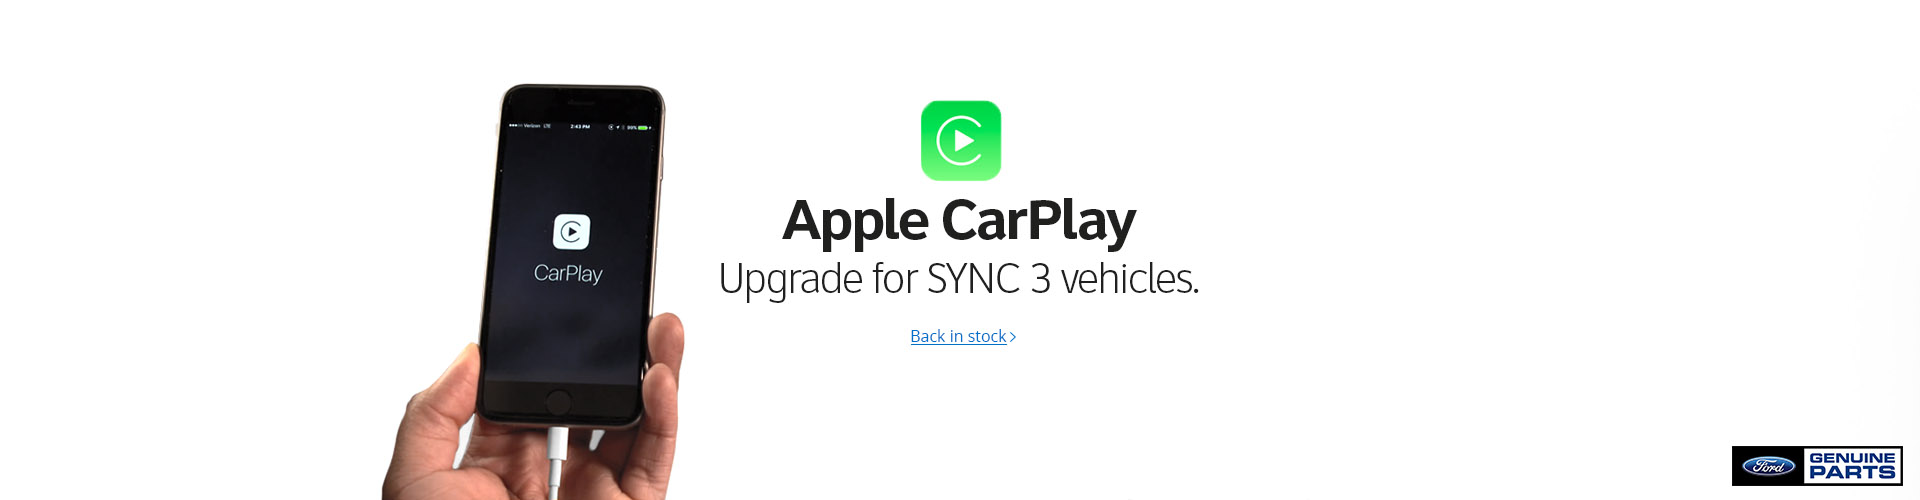 APPLE CAR PLAY UPGRADE FOR SYNC III